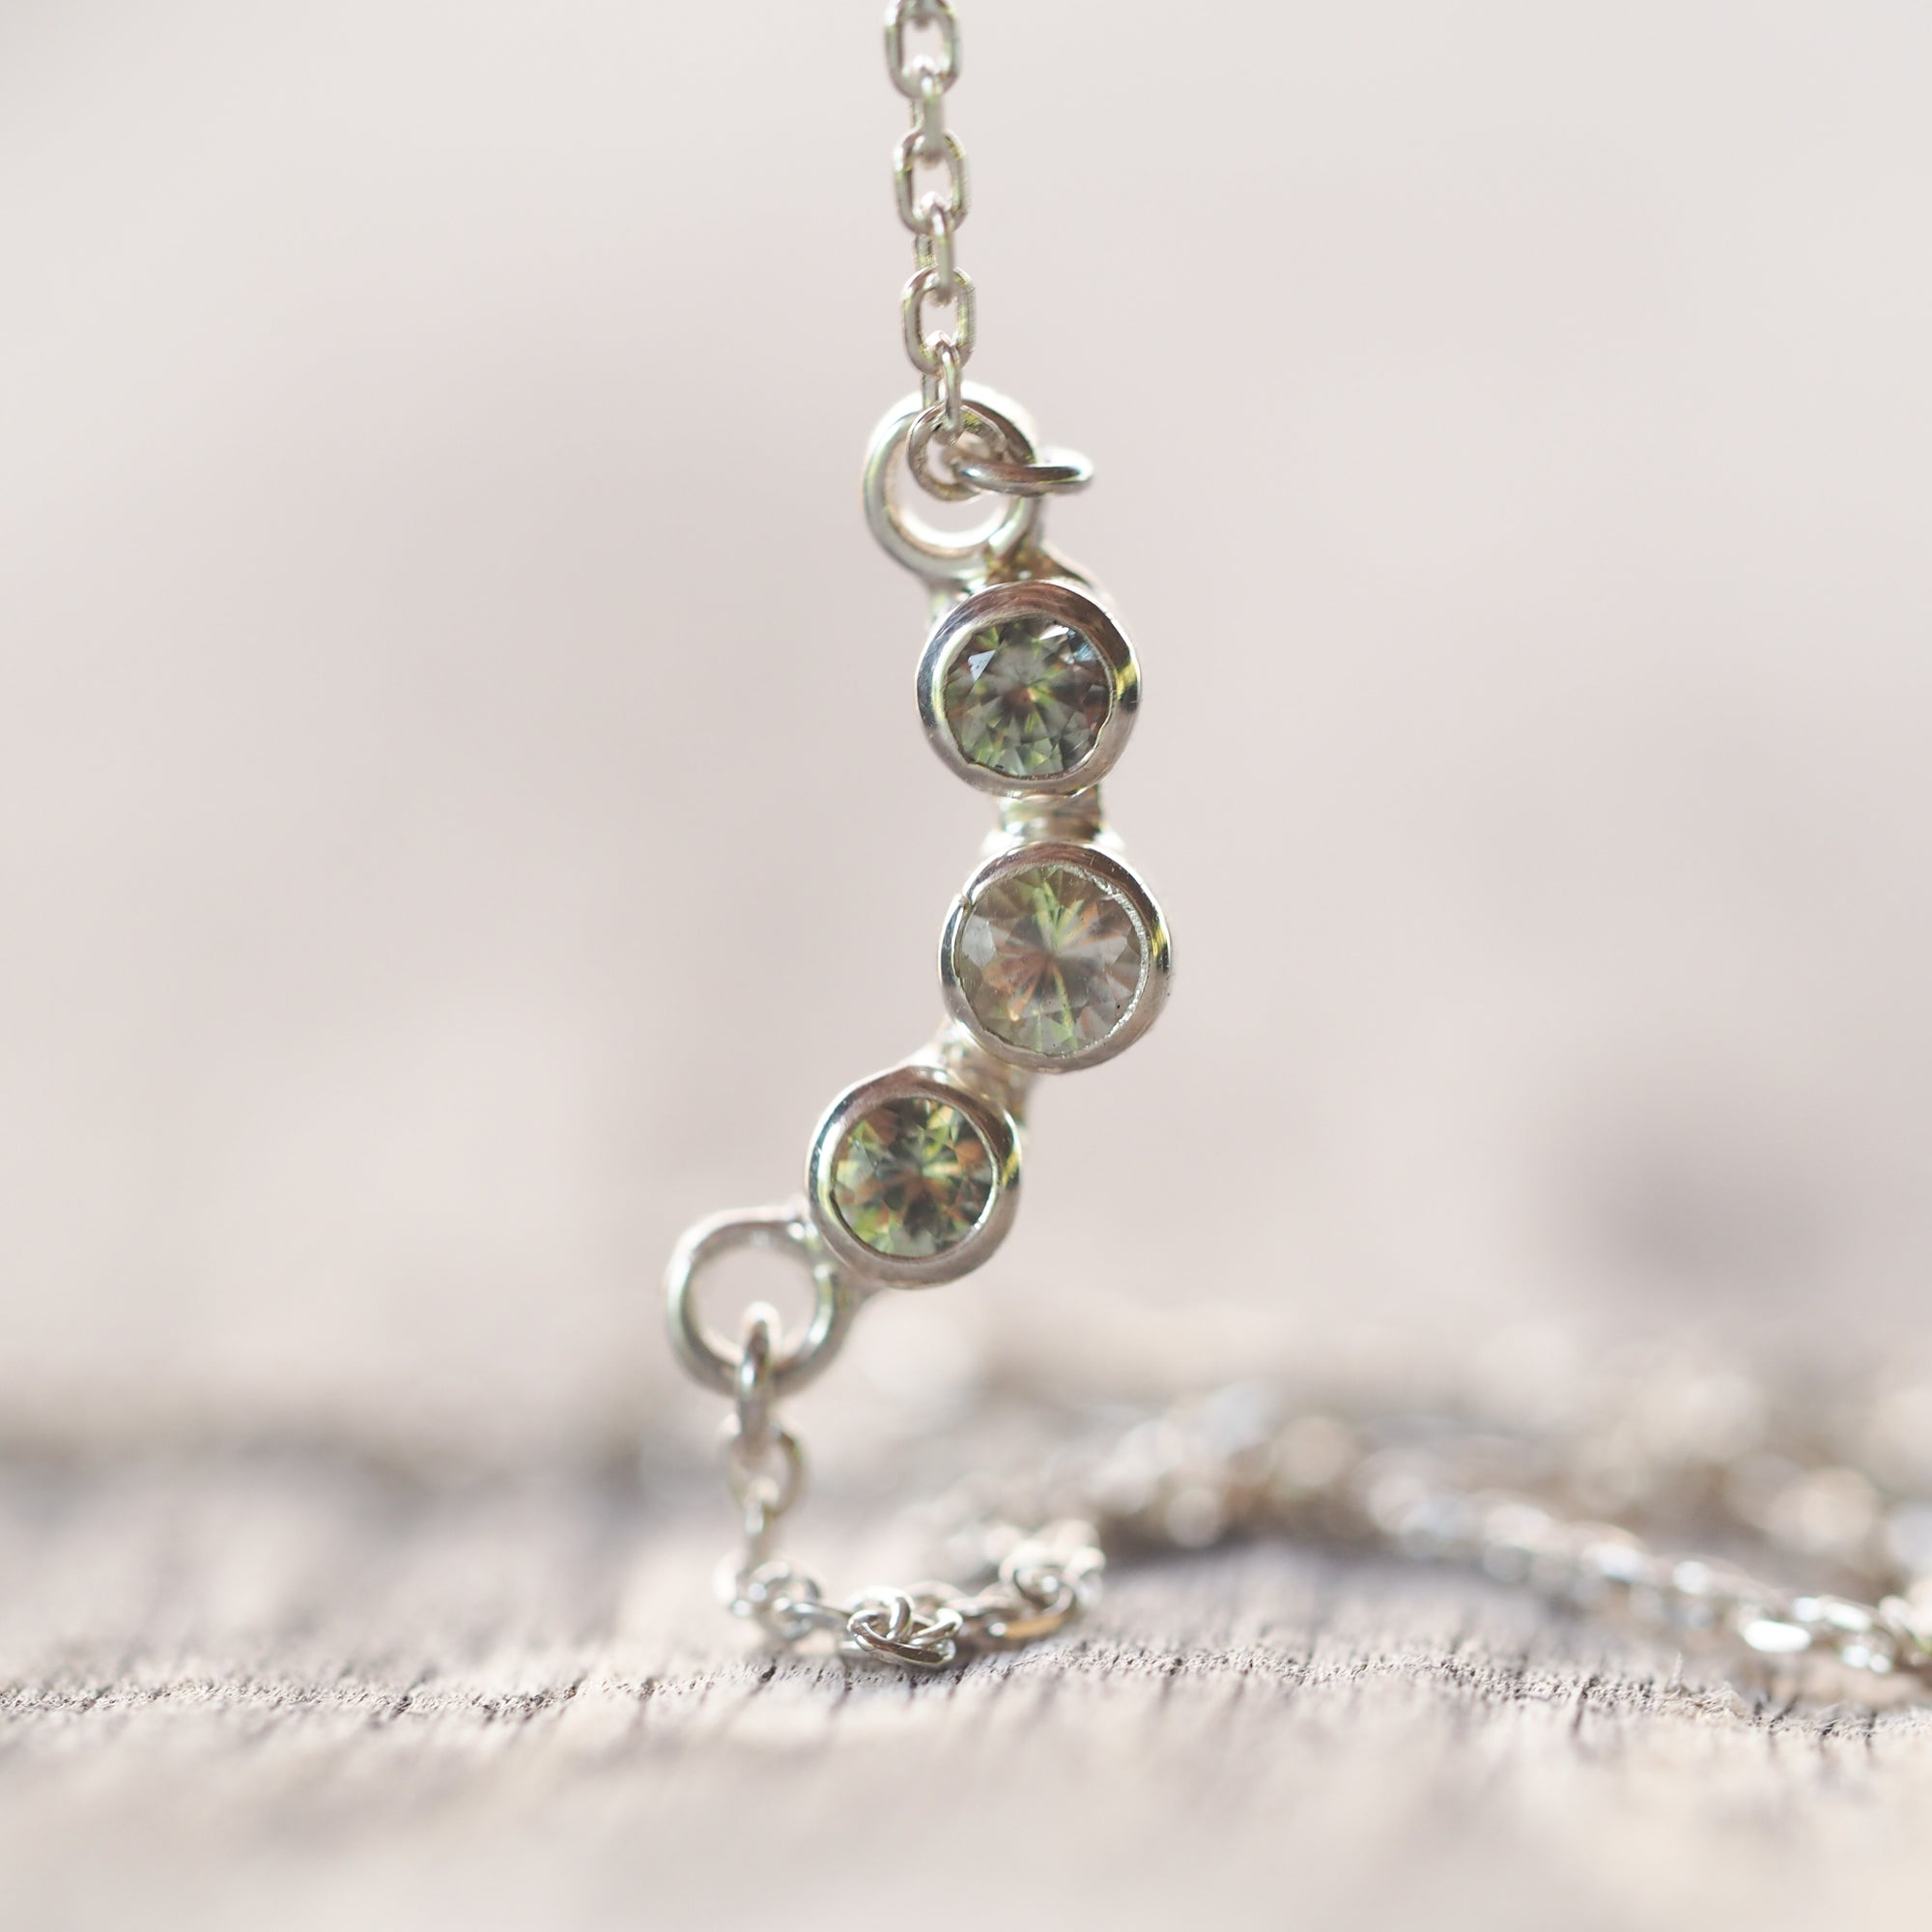 Peridot and Moonstone Necklace - Gardens of the Sun Jewelry